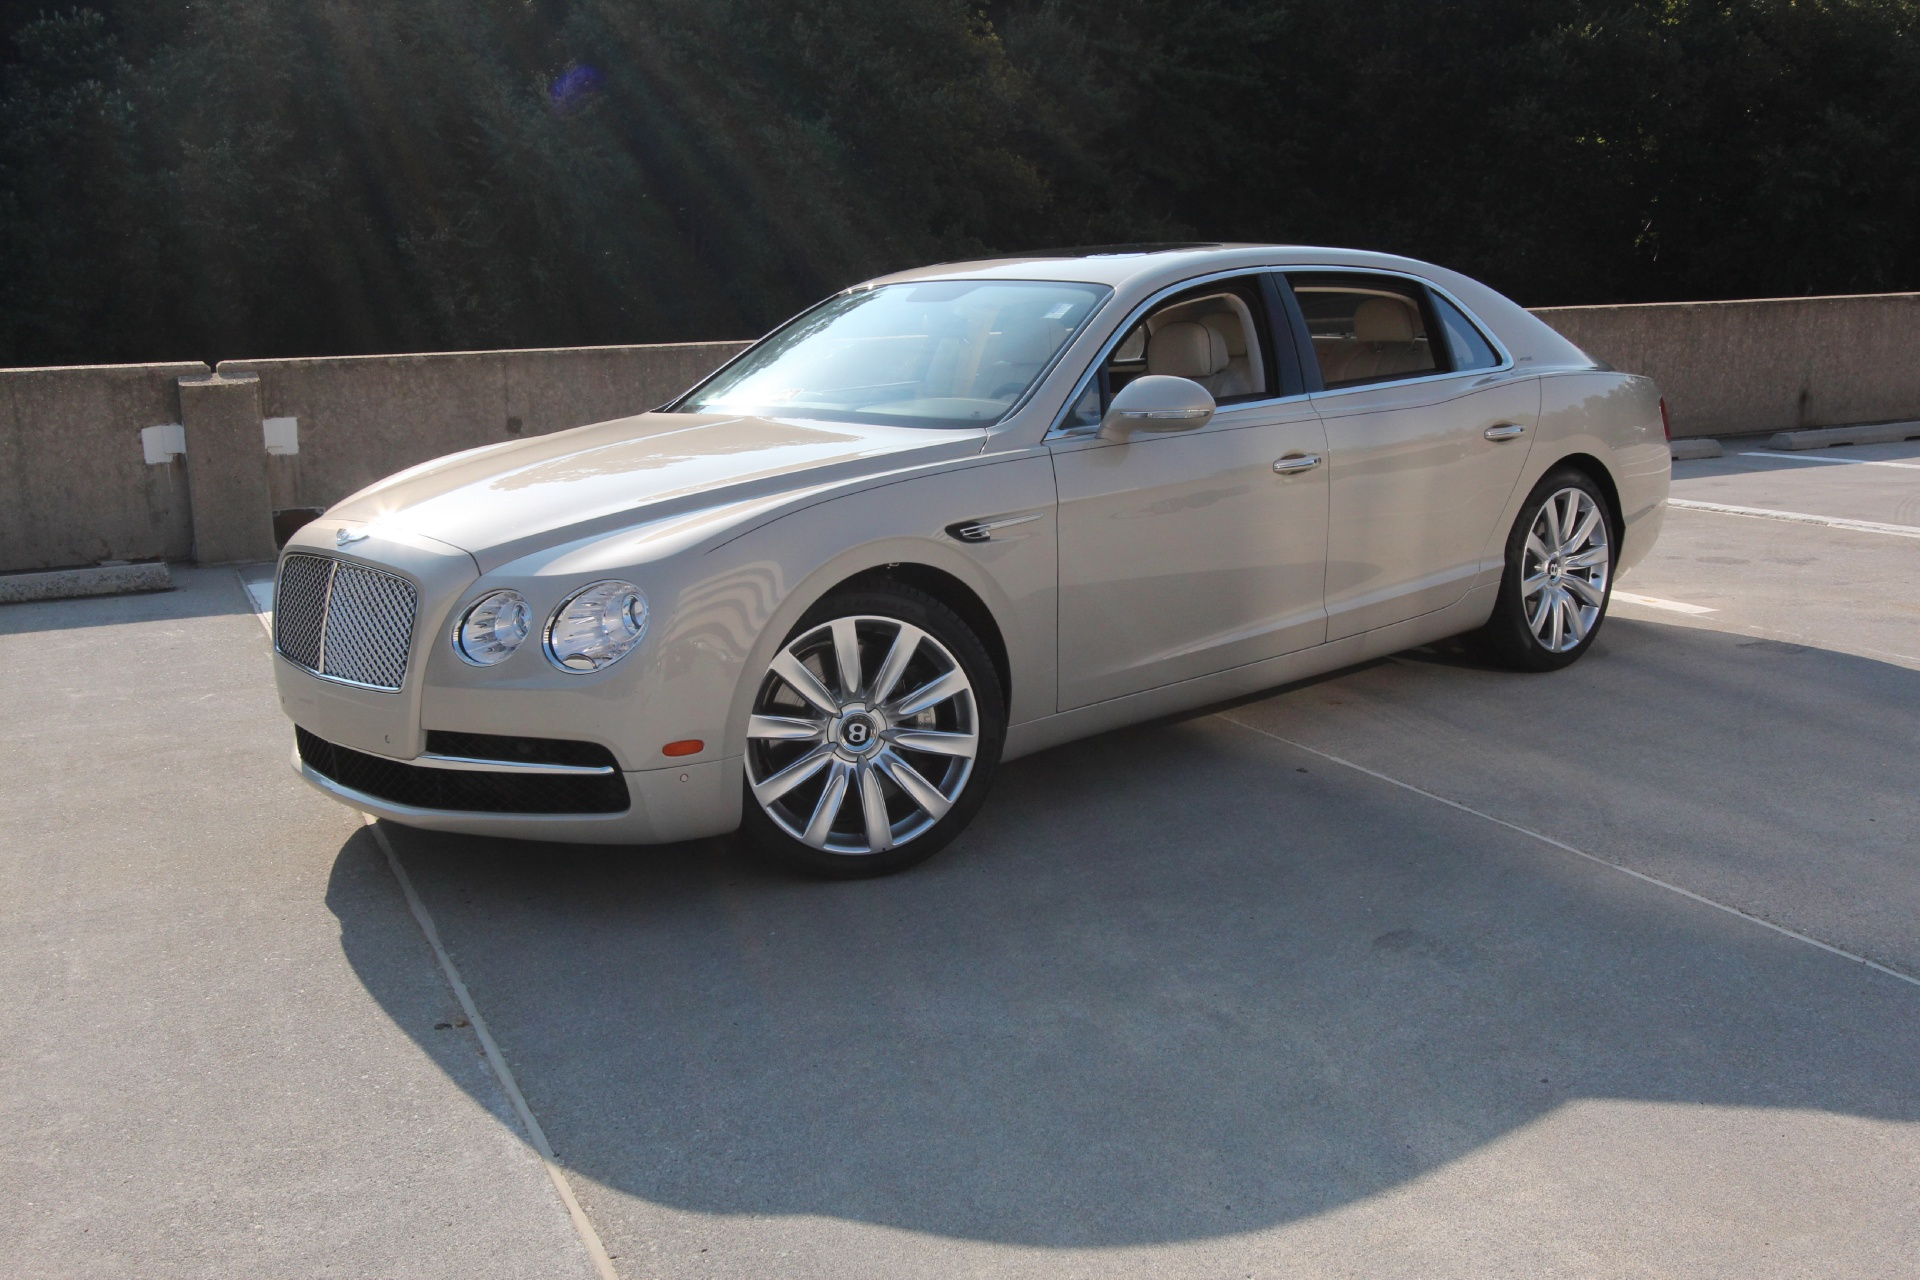 2014 Bentley Flying Spur Stock # 4NC040157 for sale near Vienna, VA ...